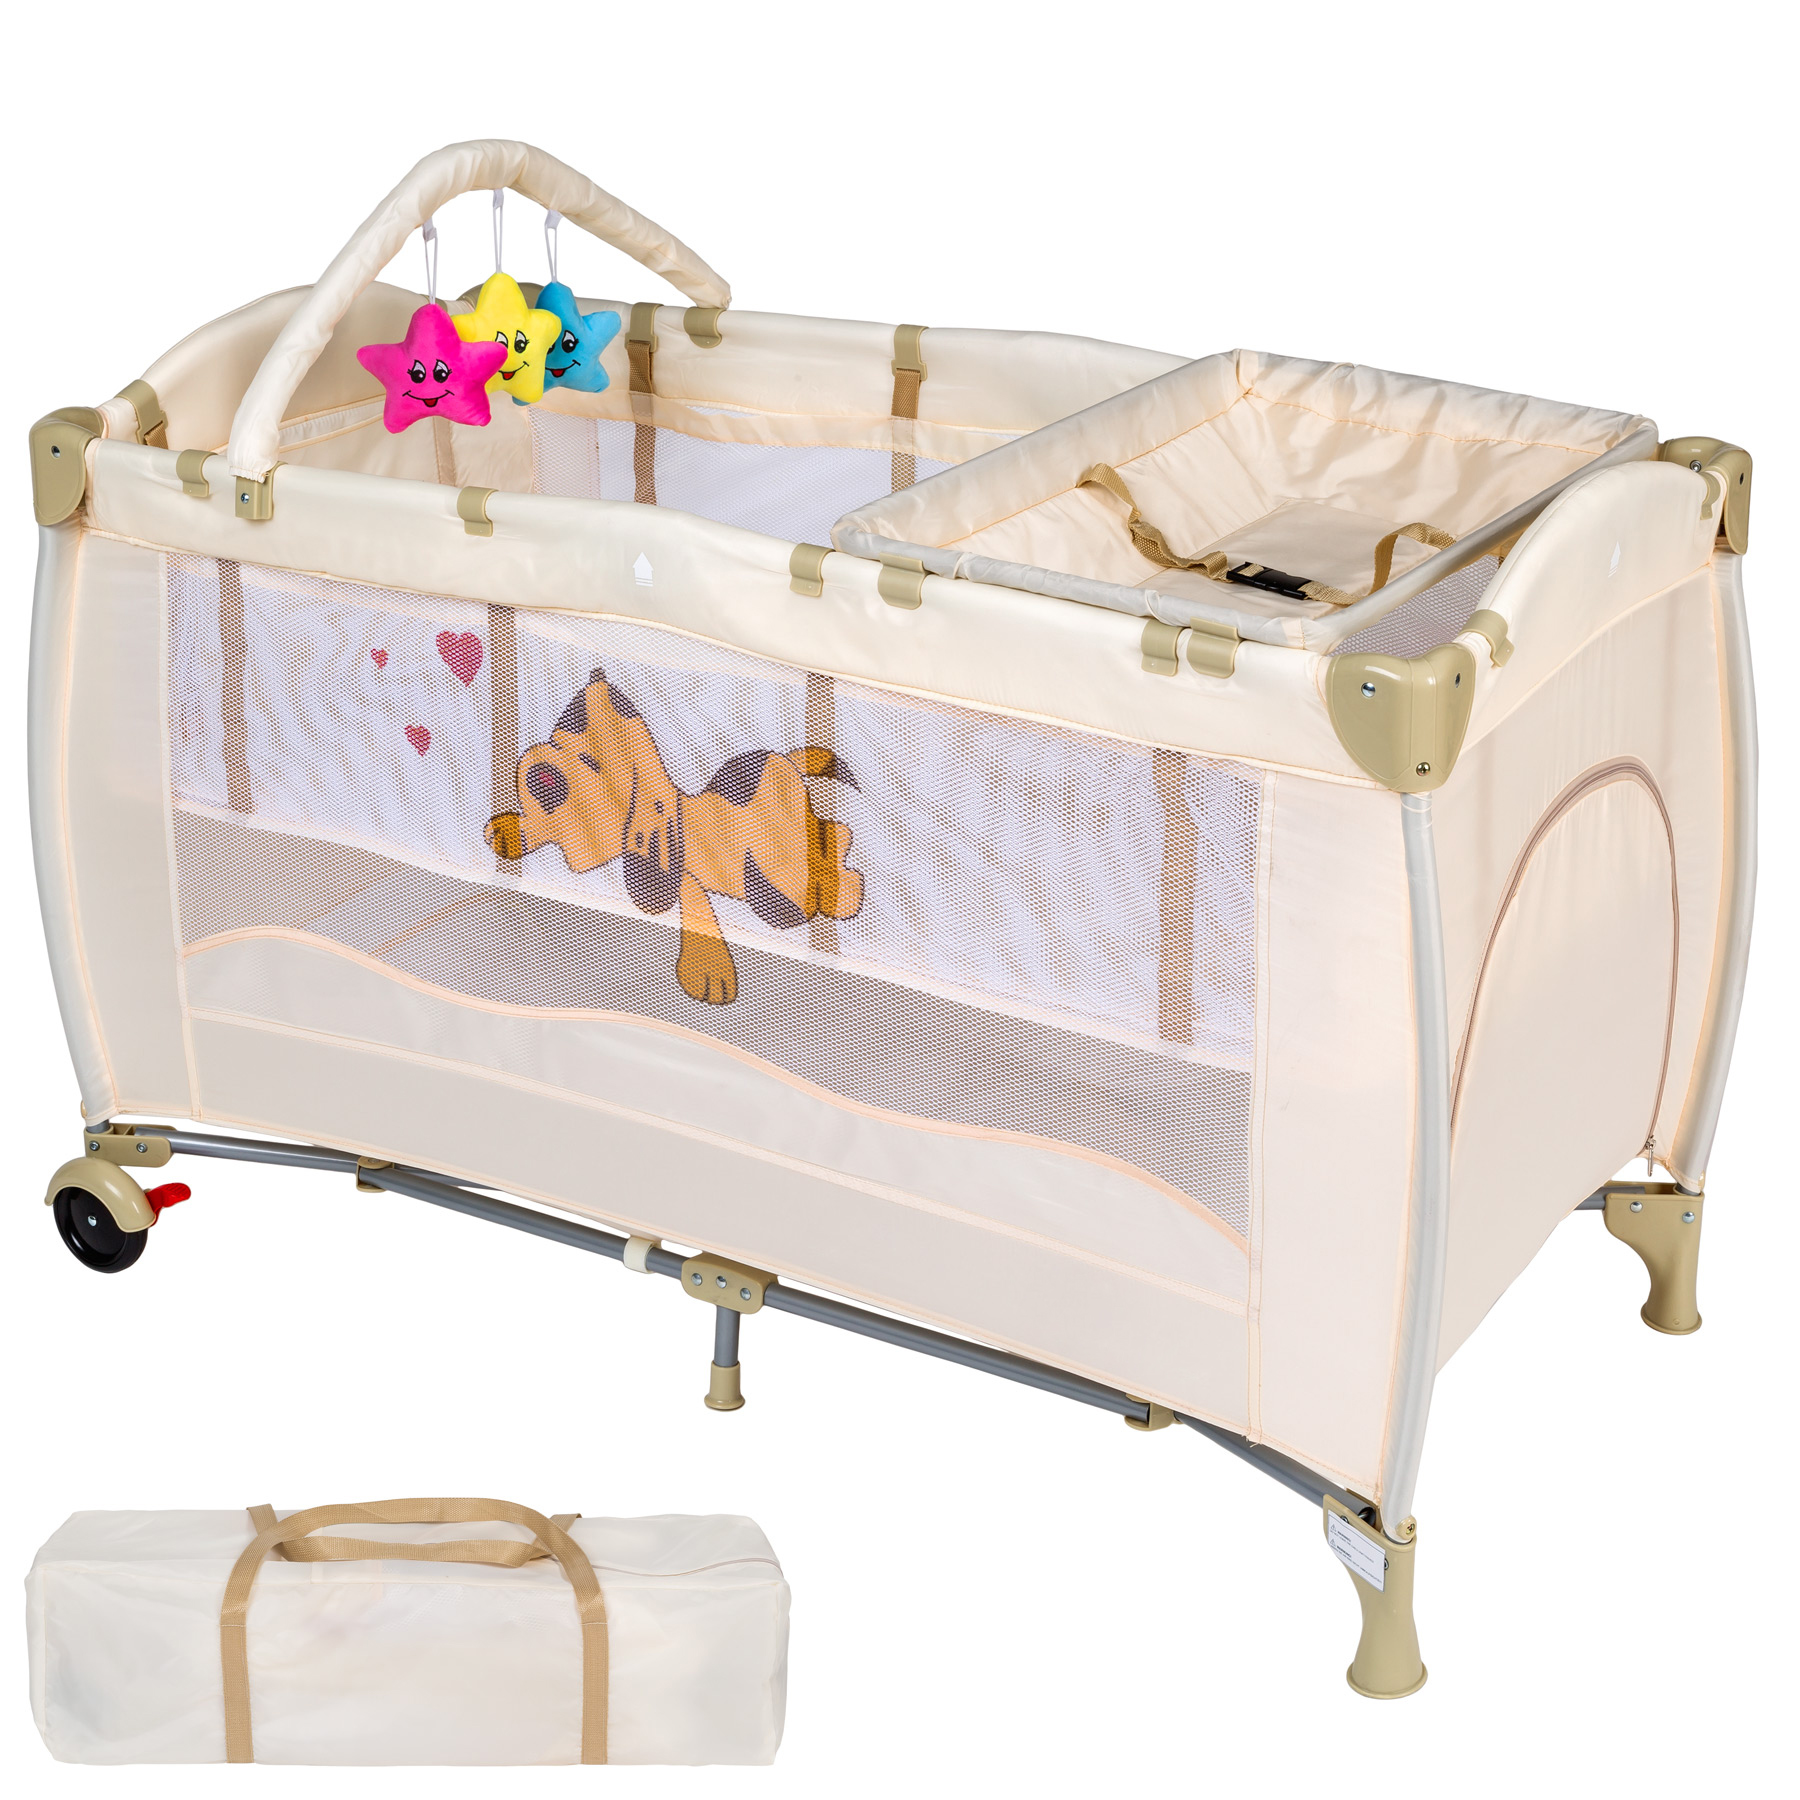 Baby Cradle Travel Bed Baby Cradle Outdoor Portable Multi function Baby Cradle Portable Folding Baby Small